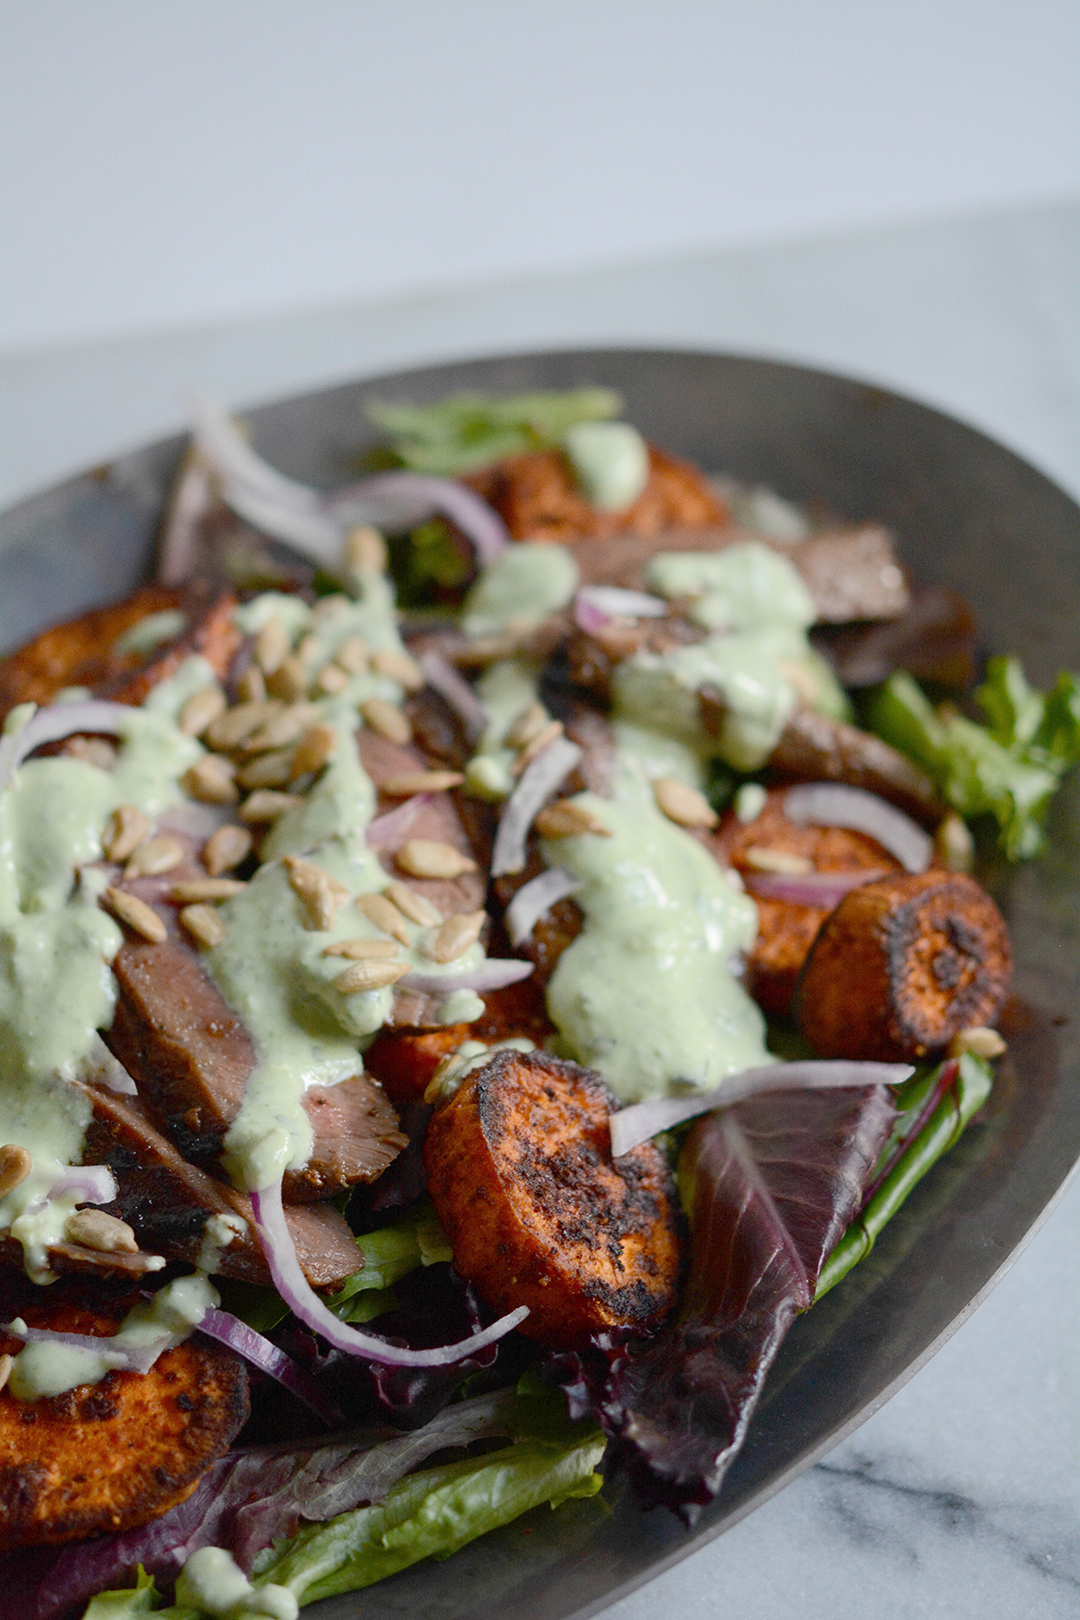 Grilled Steak and Sweet Potato Salad